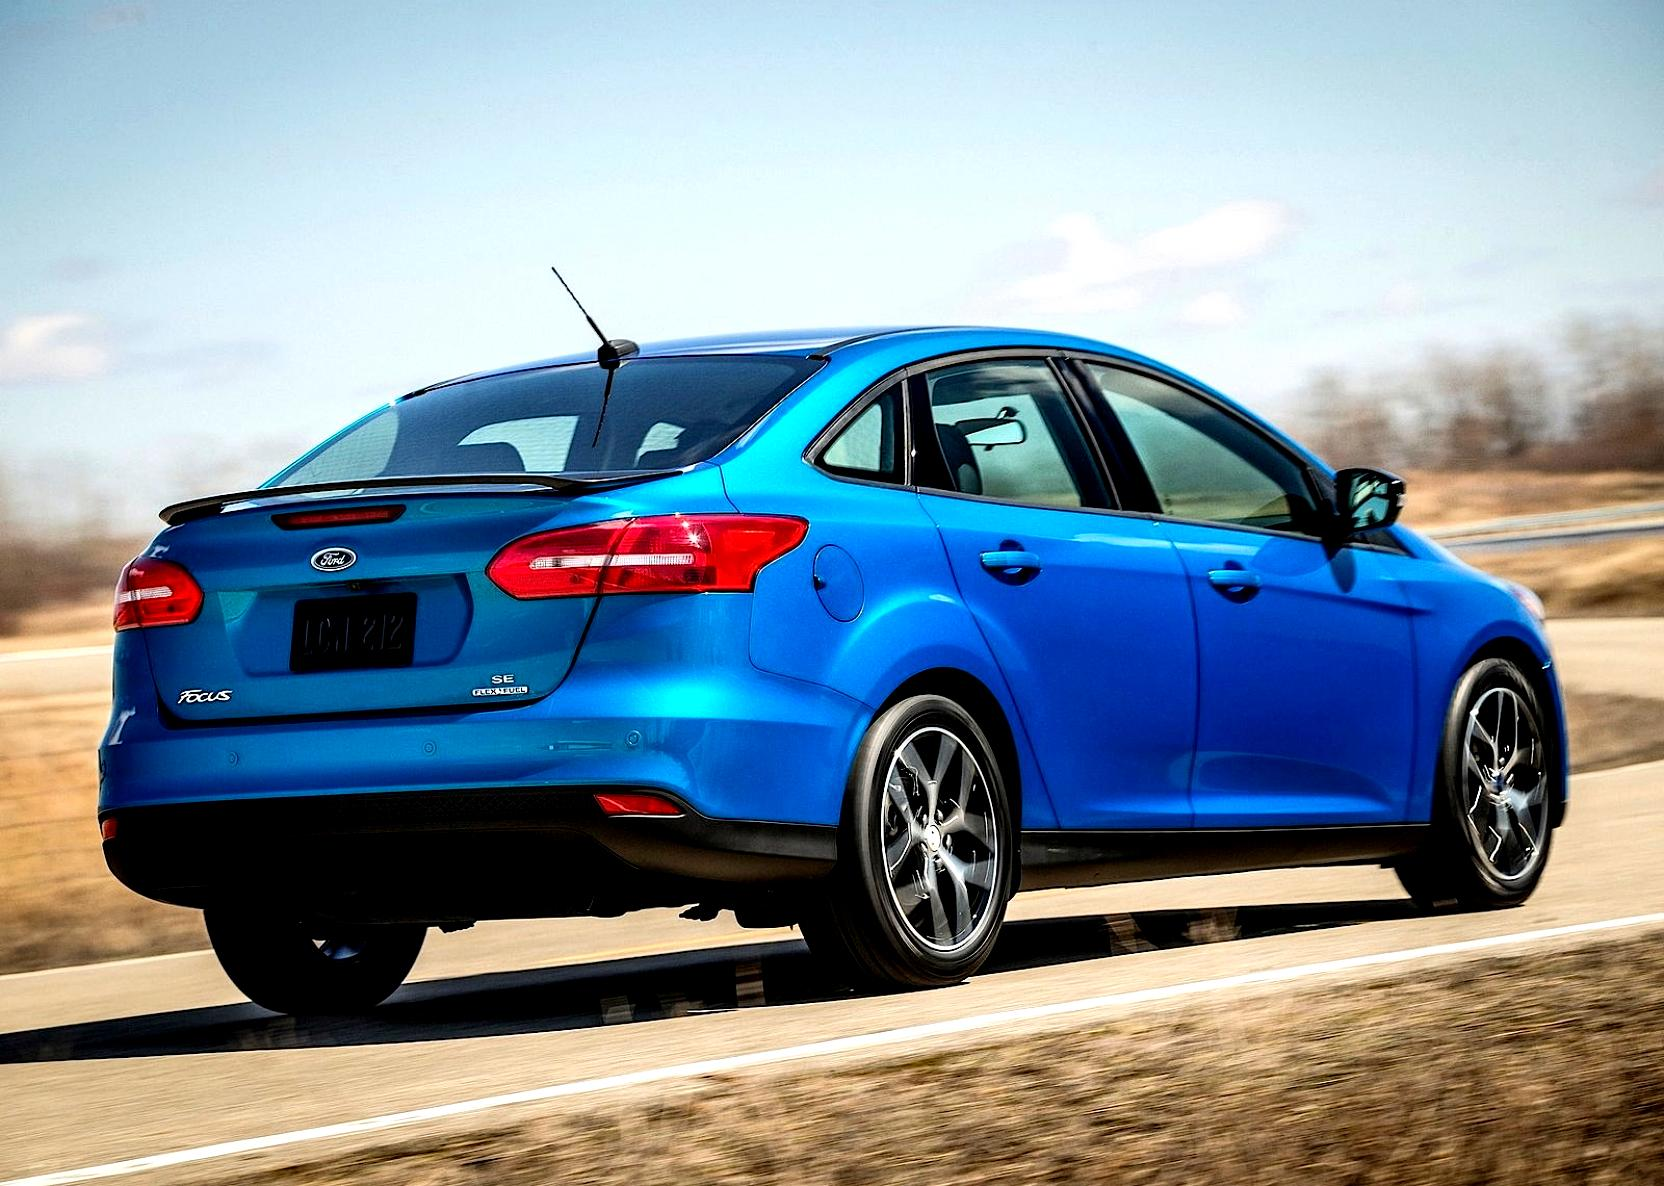 Ford Focus Sedan 2014 #29